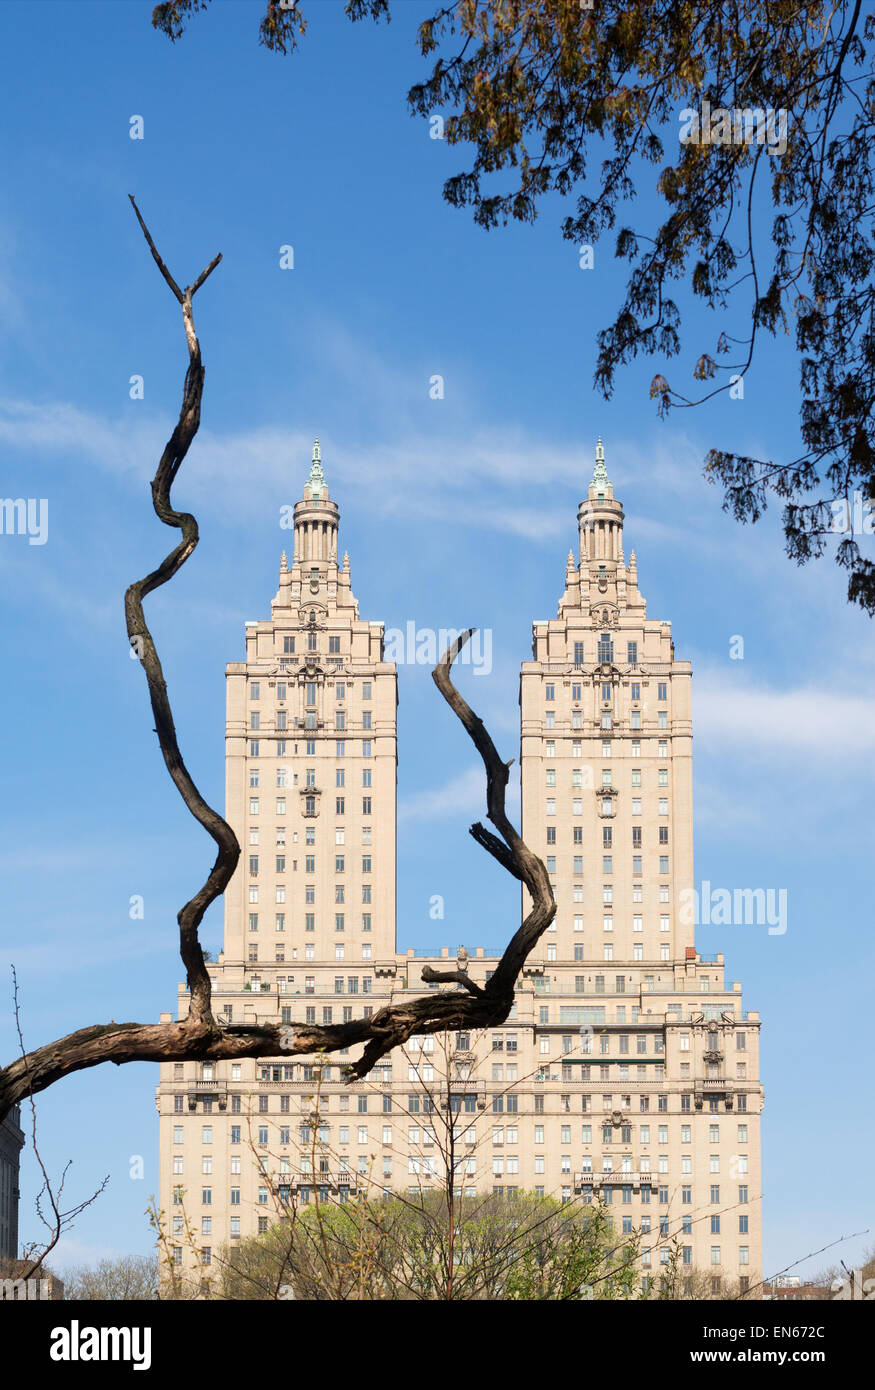 The San Remo building, seen from Central Park, Manhattan, NYC, USA - Stock Image